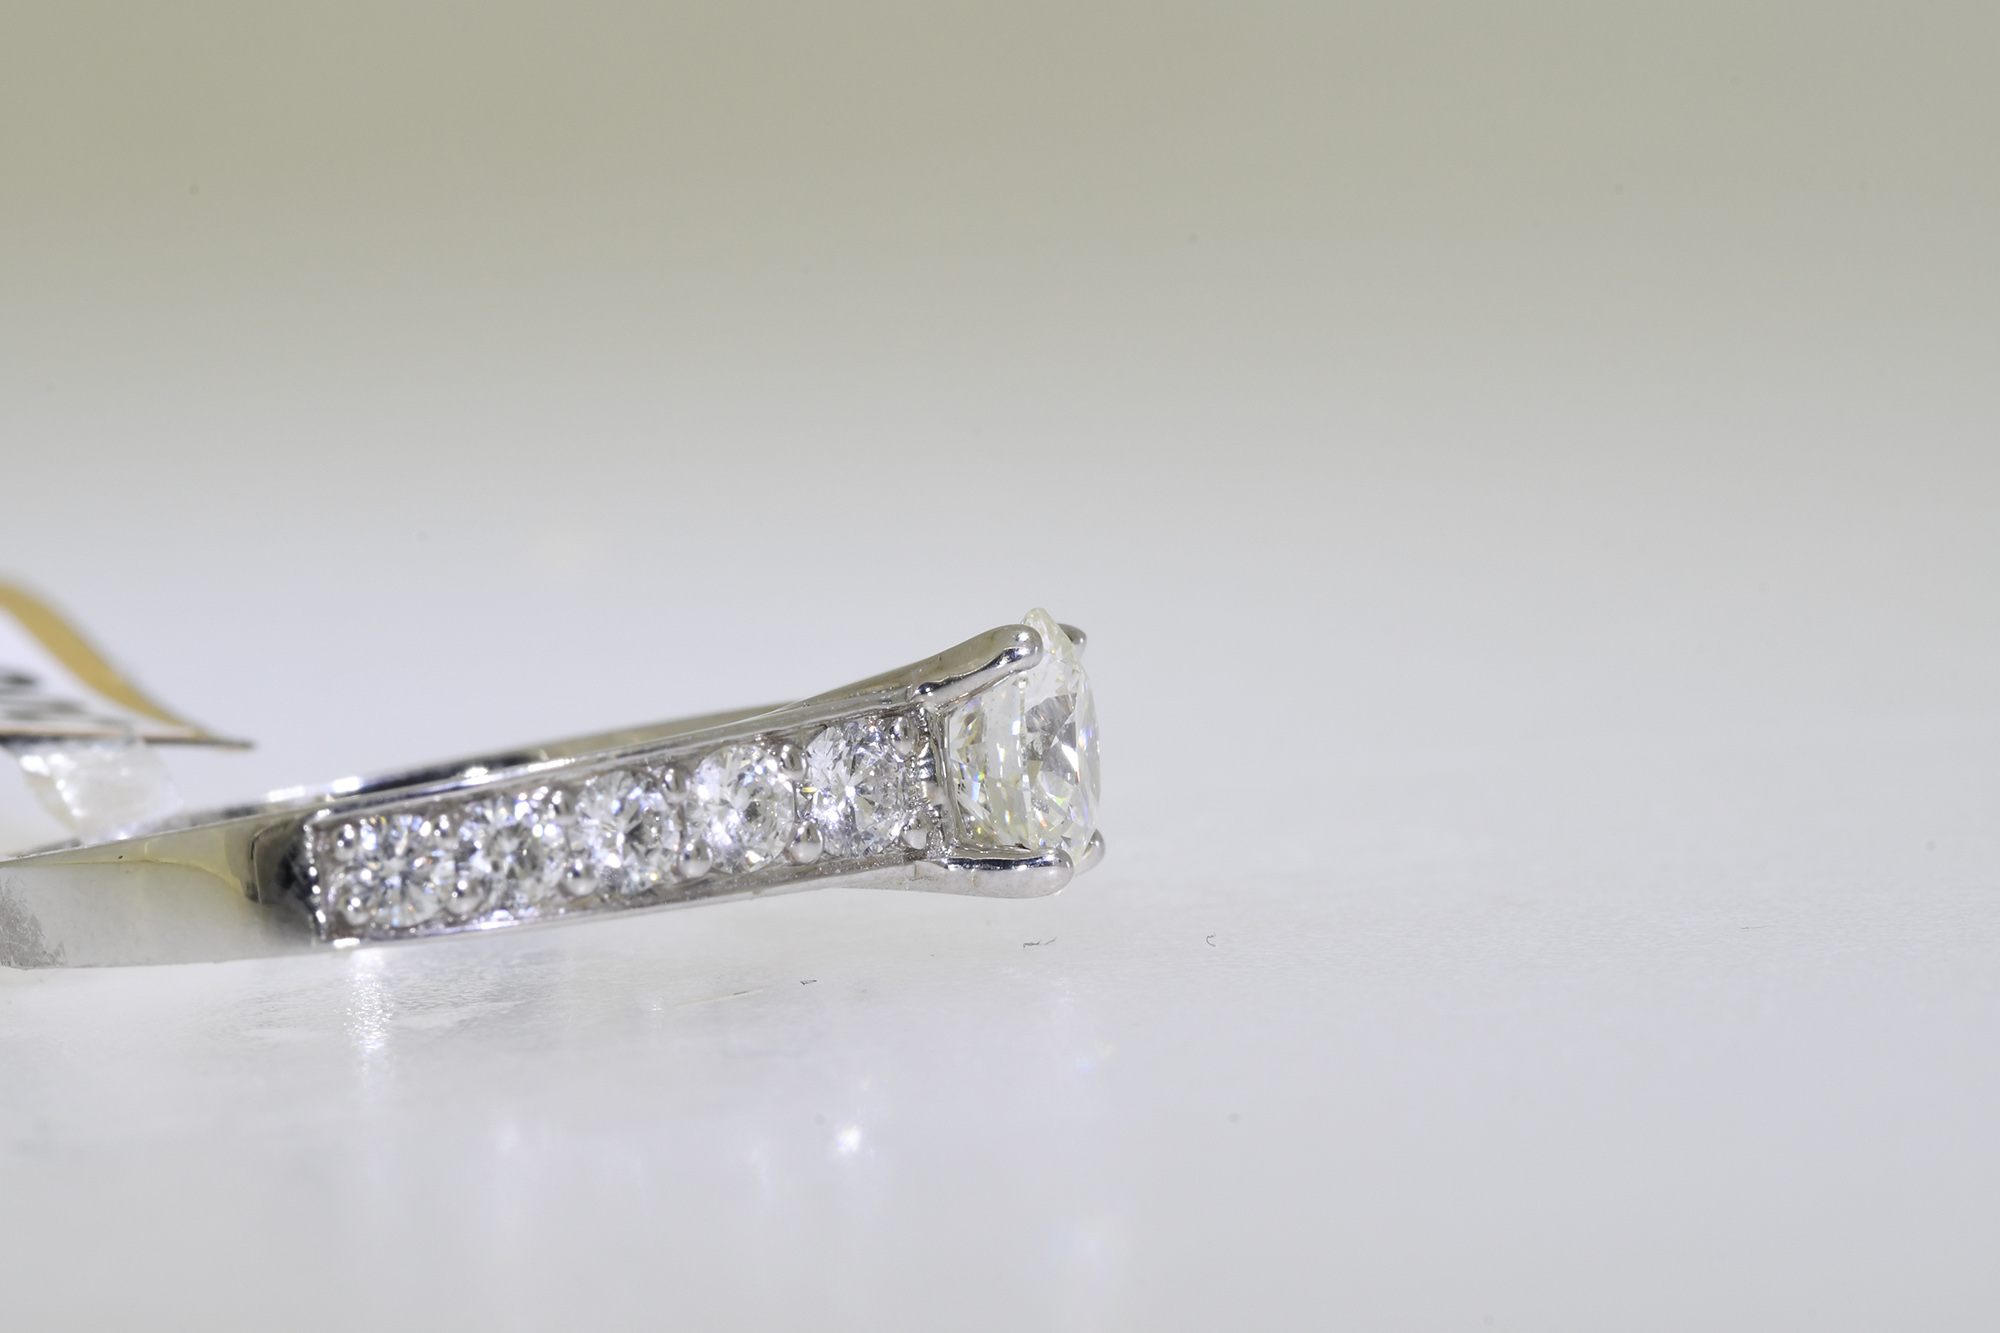 Solitaire Diamond Ring - Image 2 of 3